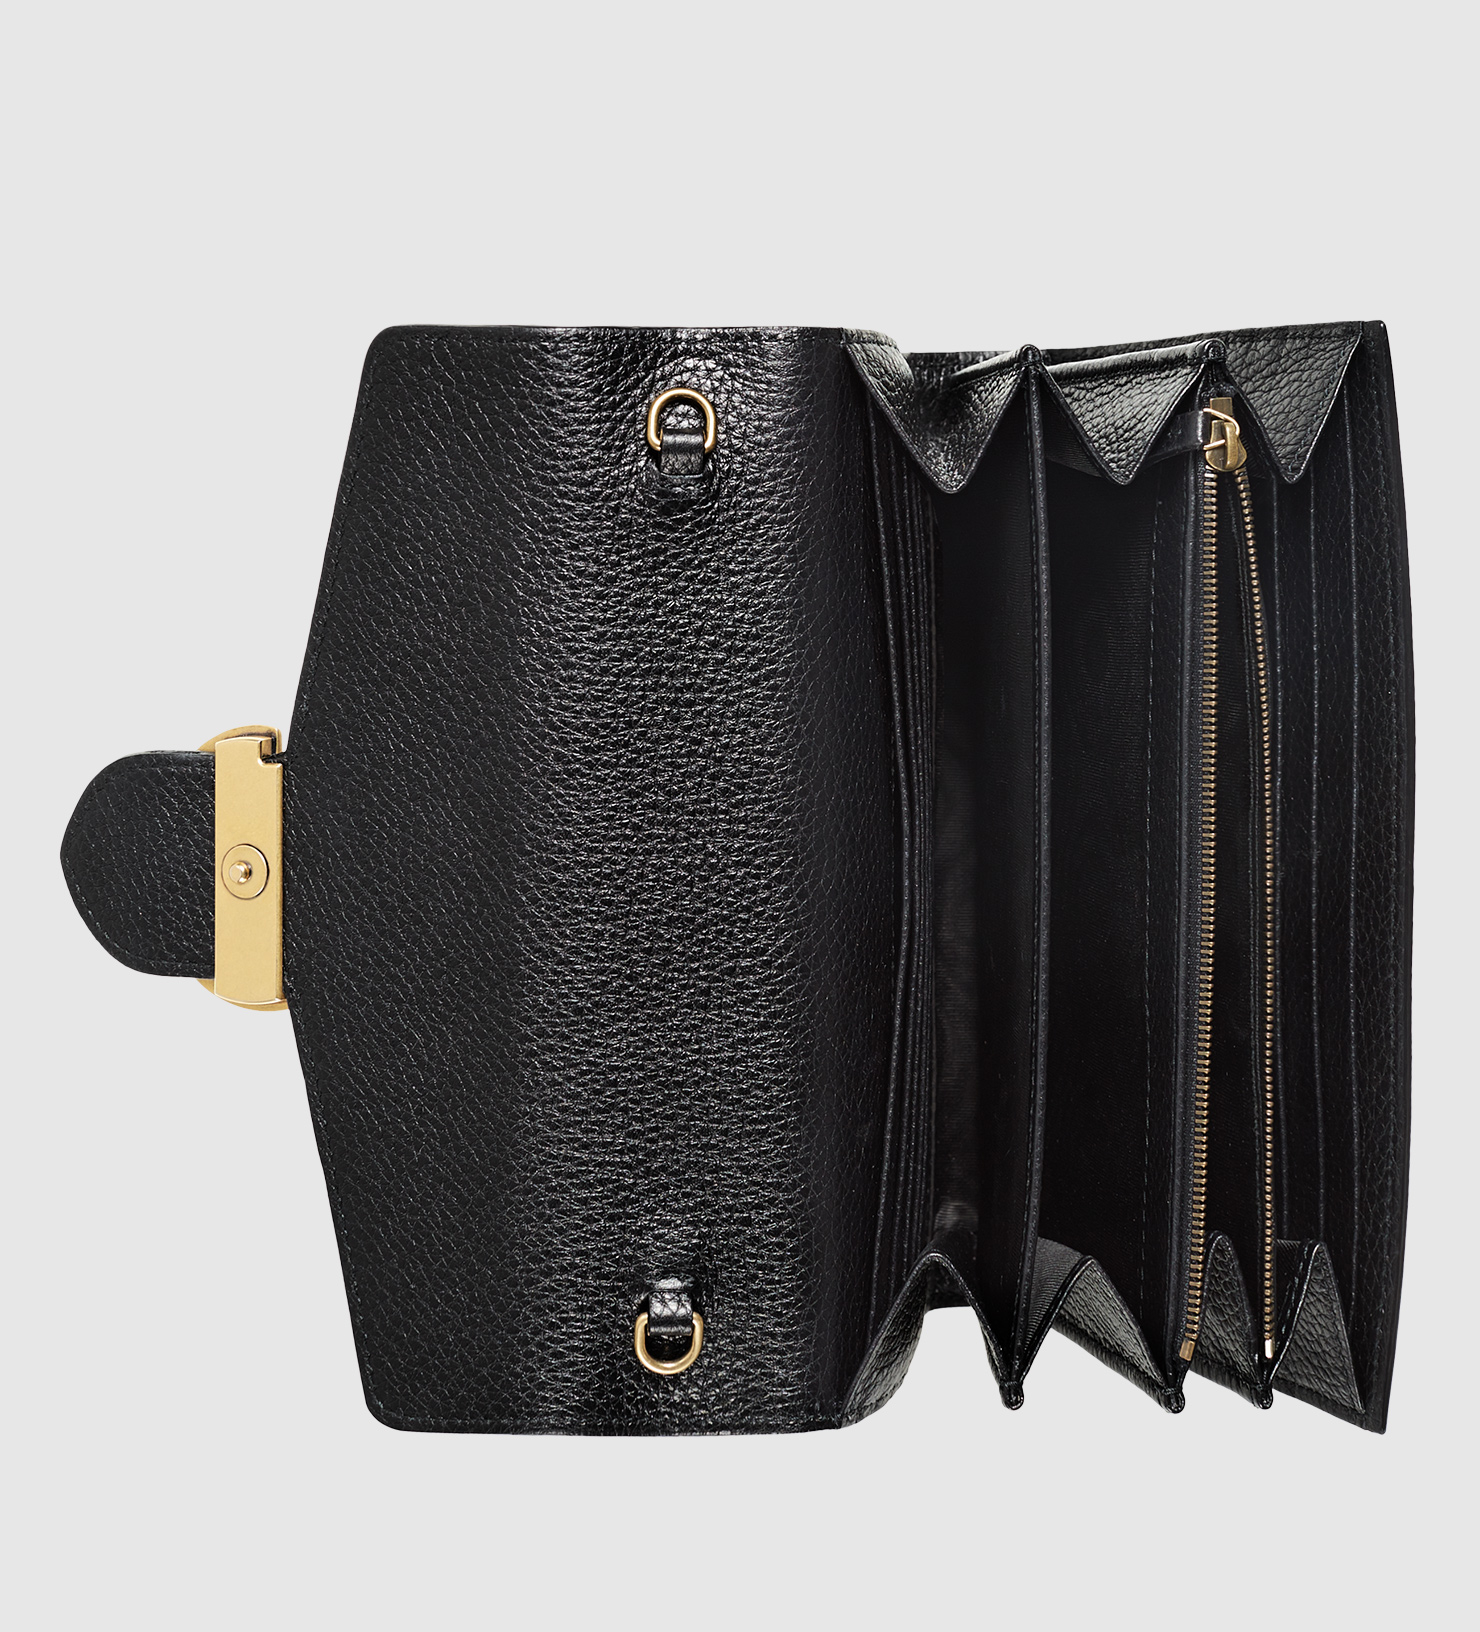 Lyst - Gucci Gg Marmont Leather Chain Wallet in Black